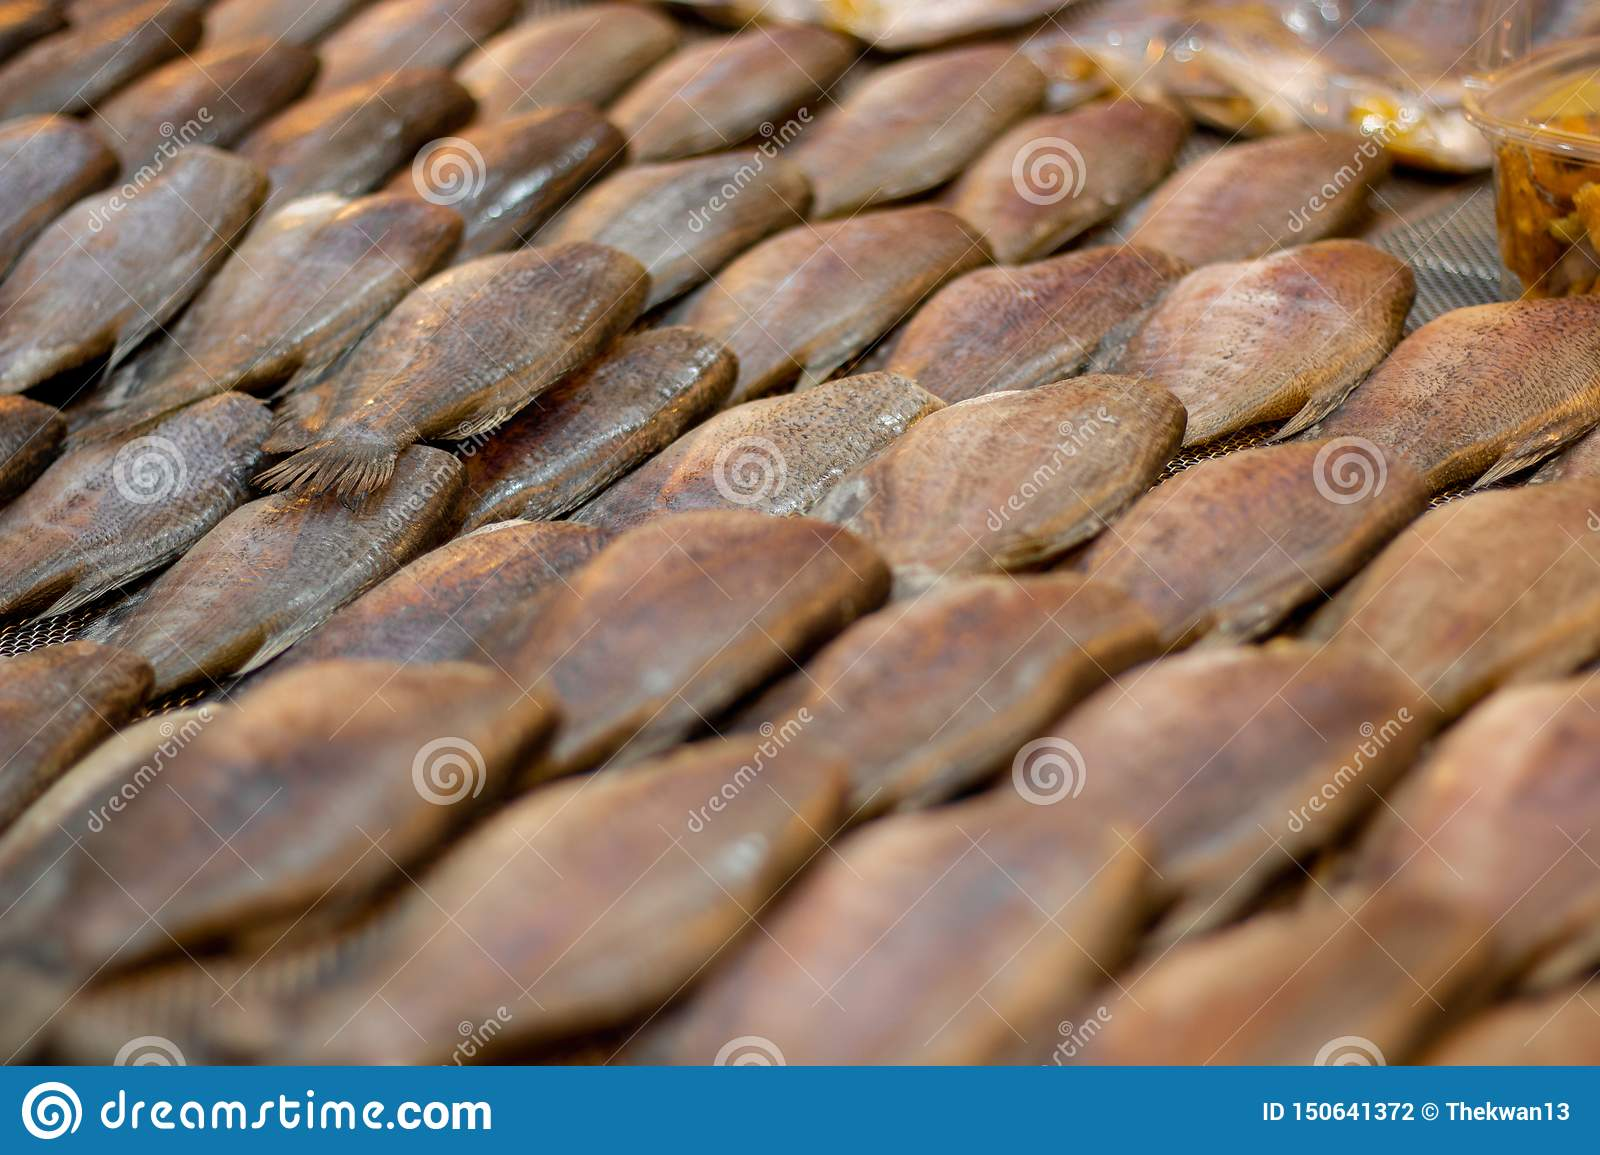 Dried Trichogaster pectoralis fish , Sun dried fish